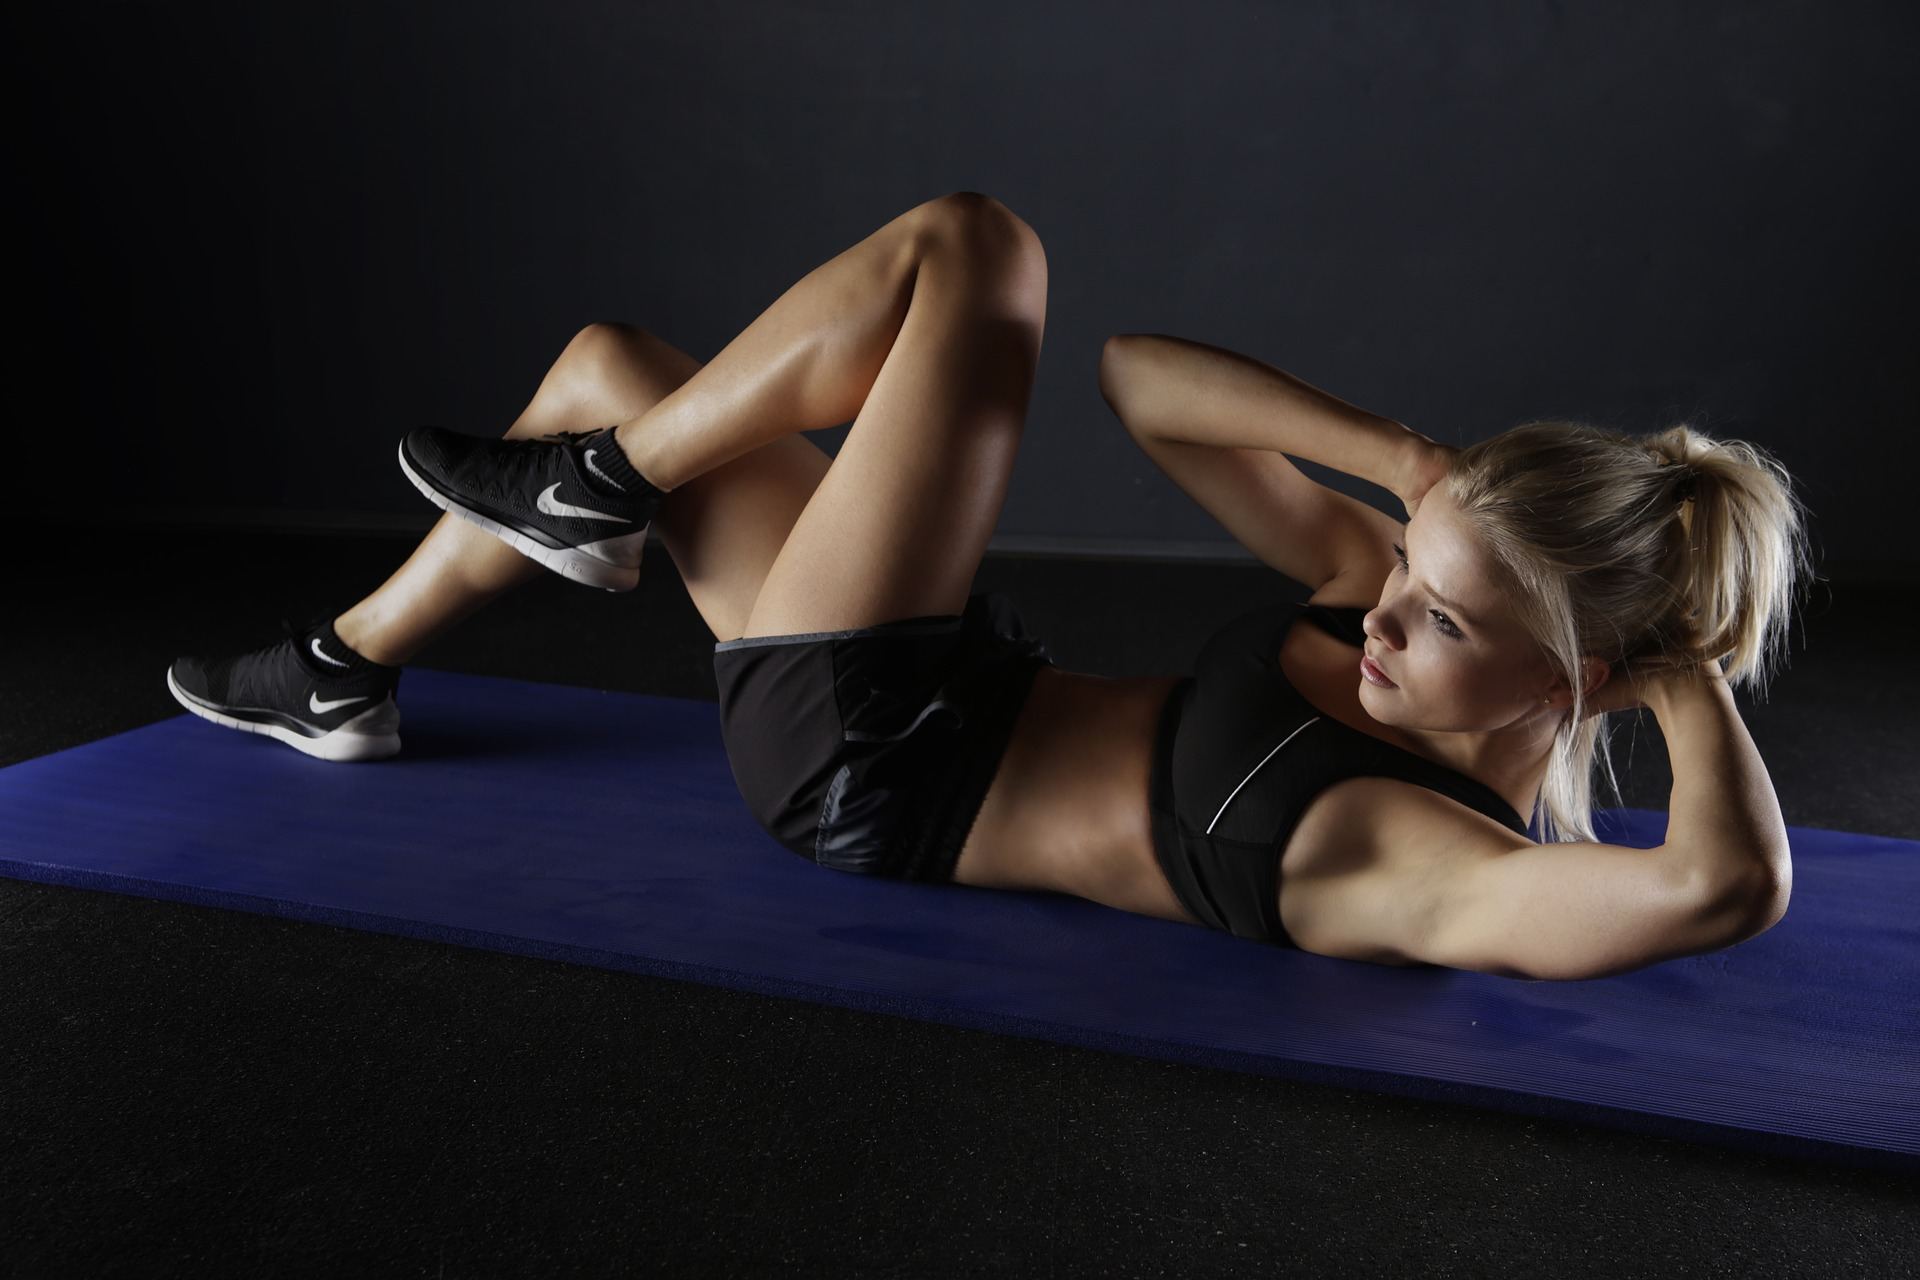 The 10 Best Exercises for Six Pack Abs